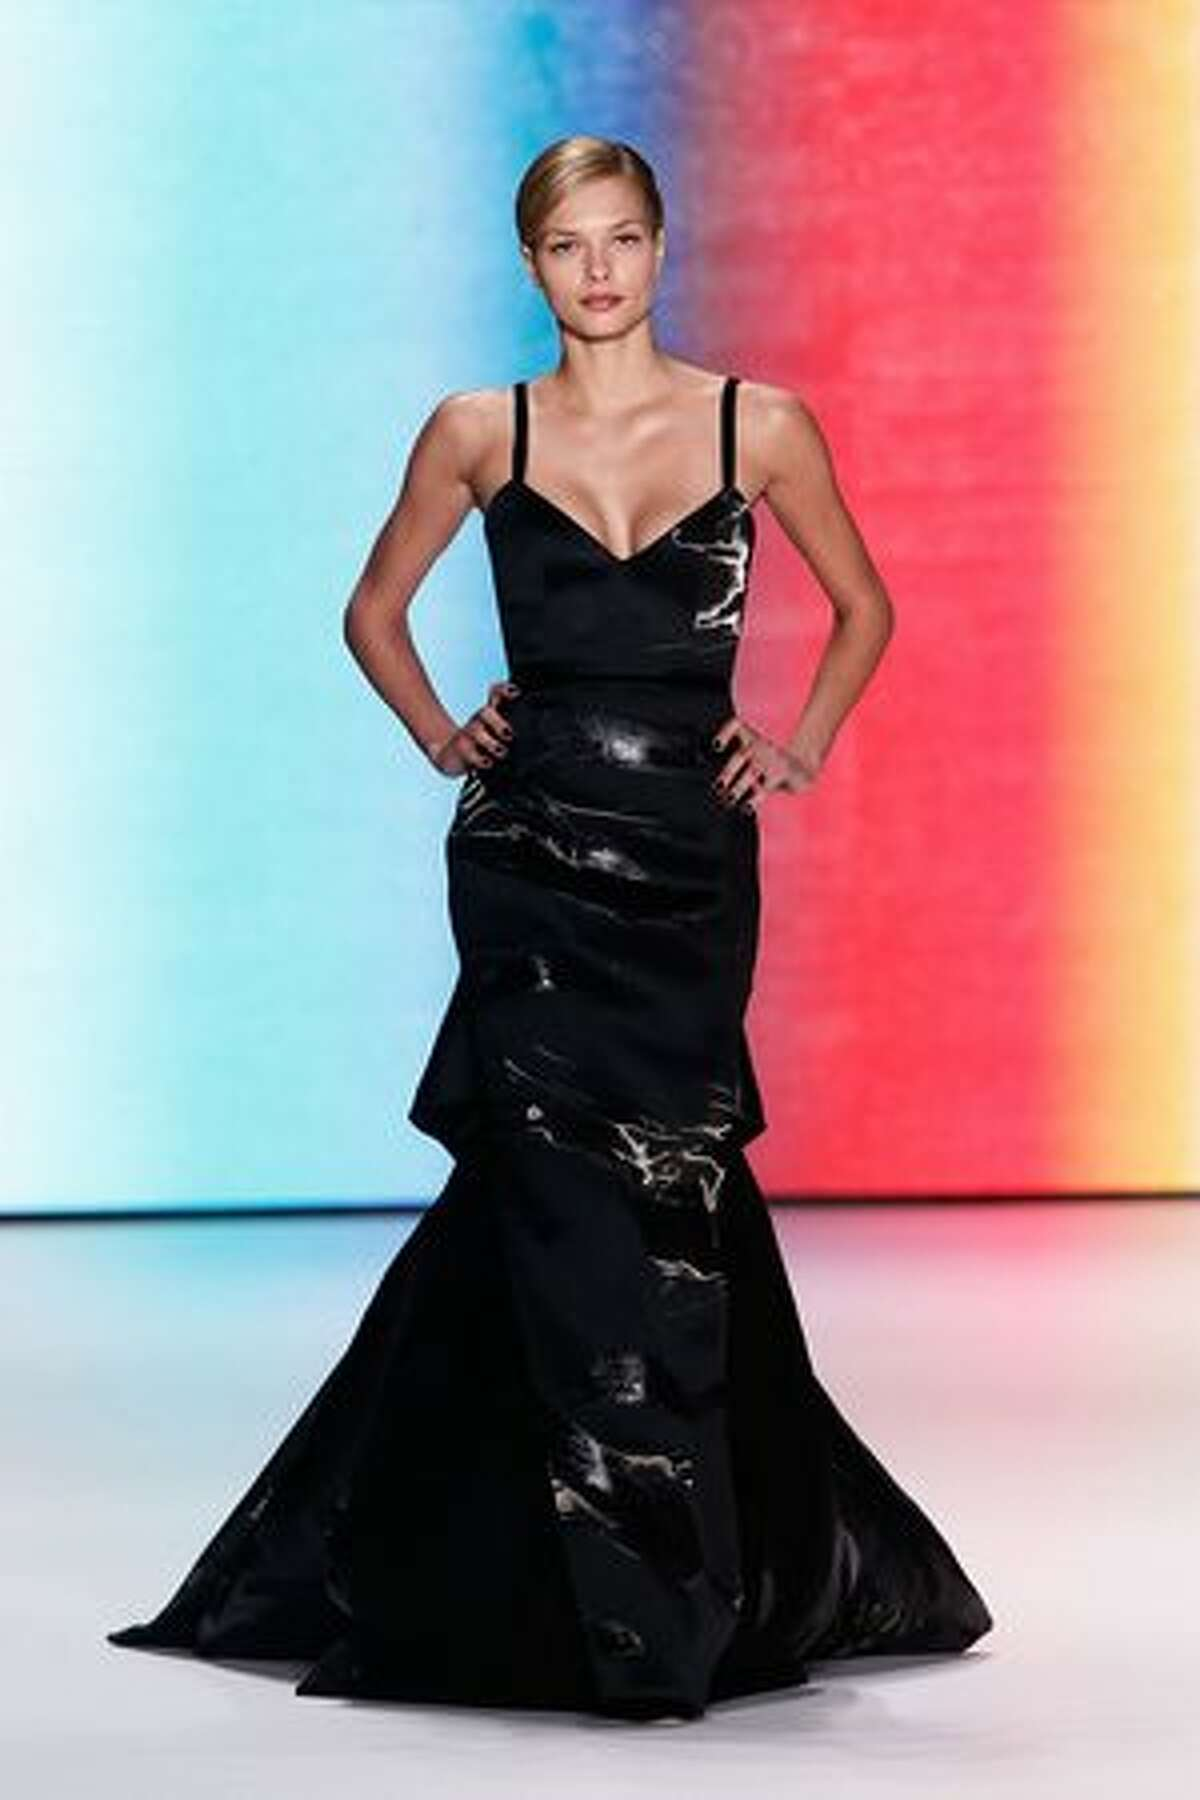 A model walks the runway at the Carolina Herrera Fall 2011 fashion show during Mercedes-Benz Fashion Week at The Theatre at Lincoln Center in New York City.